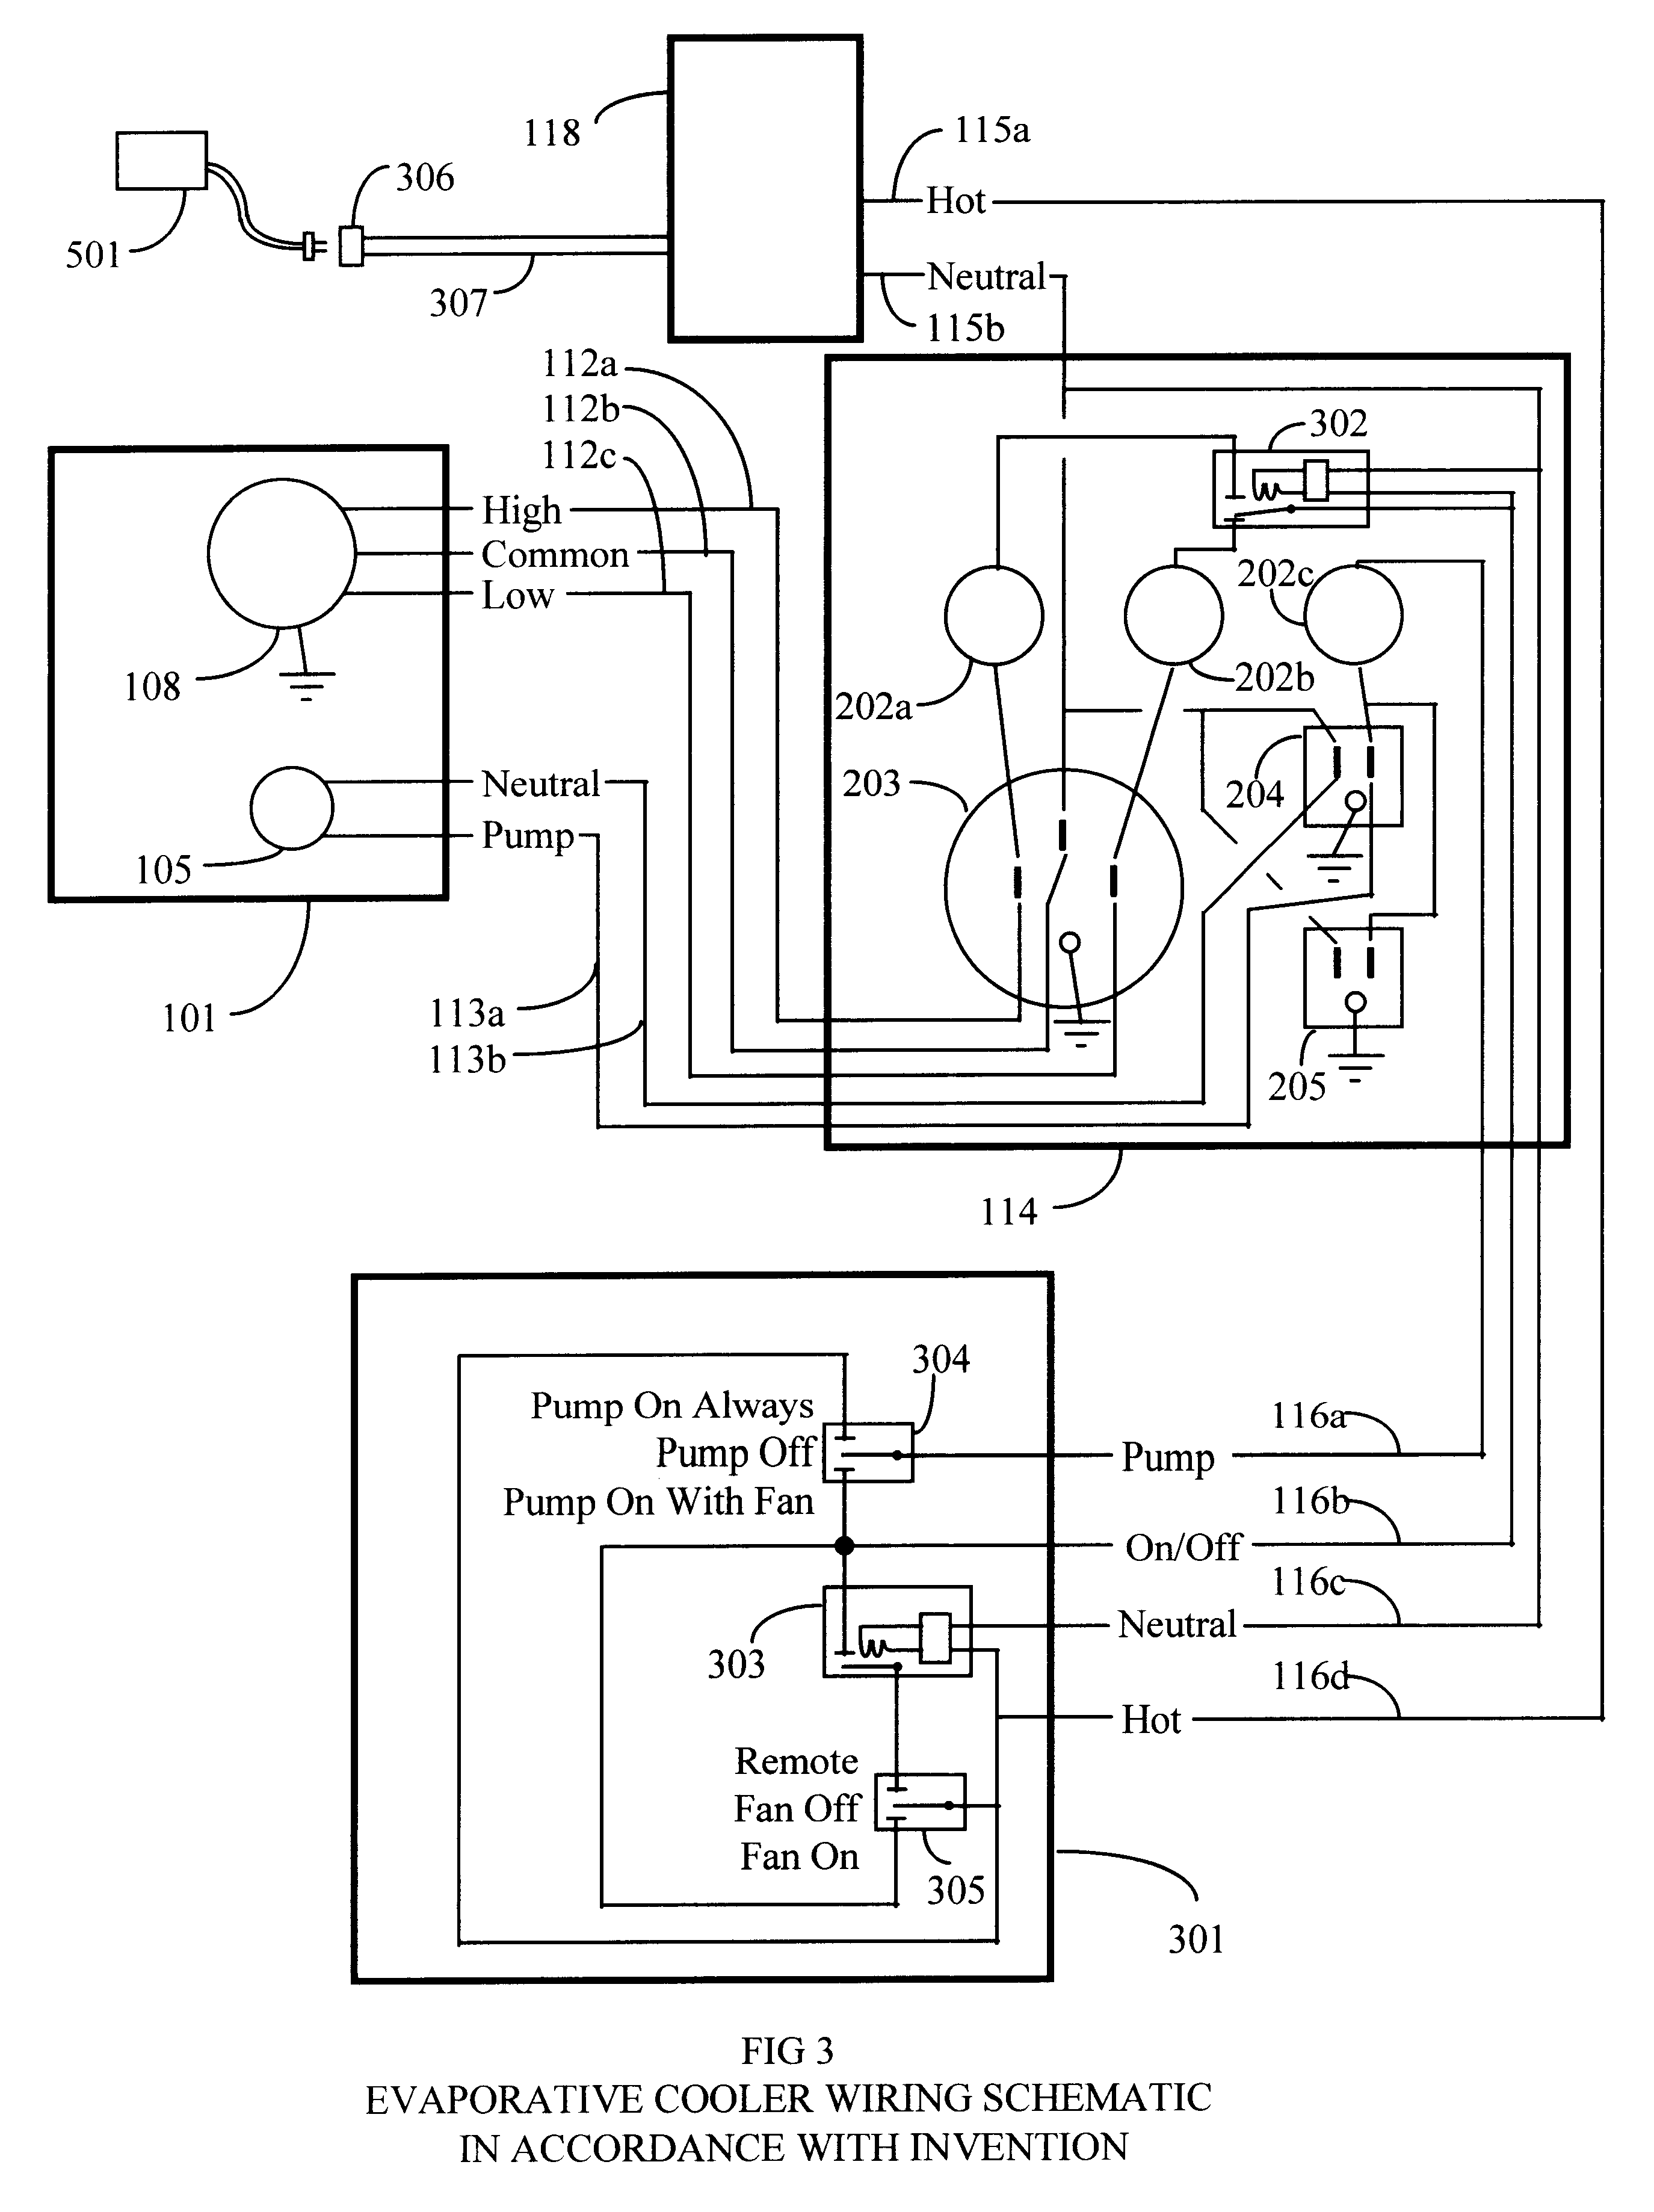 patent us6357243 remote system for evaporative coolers patents